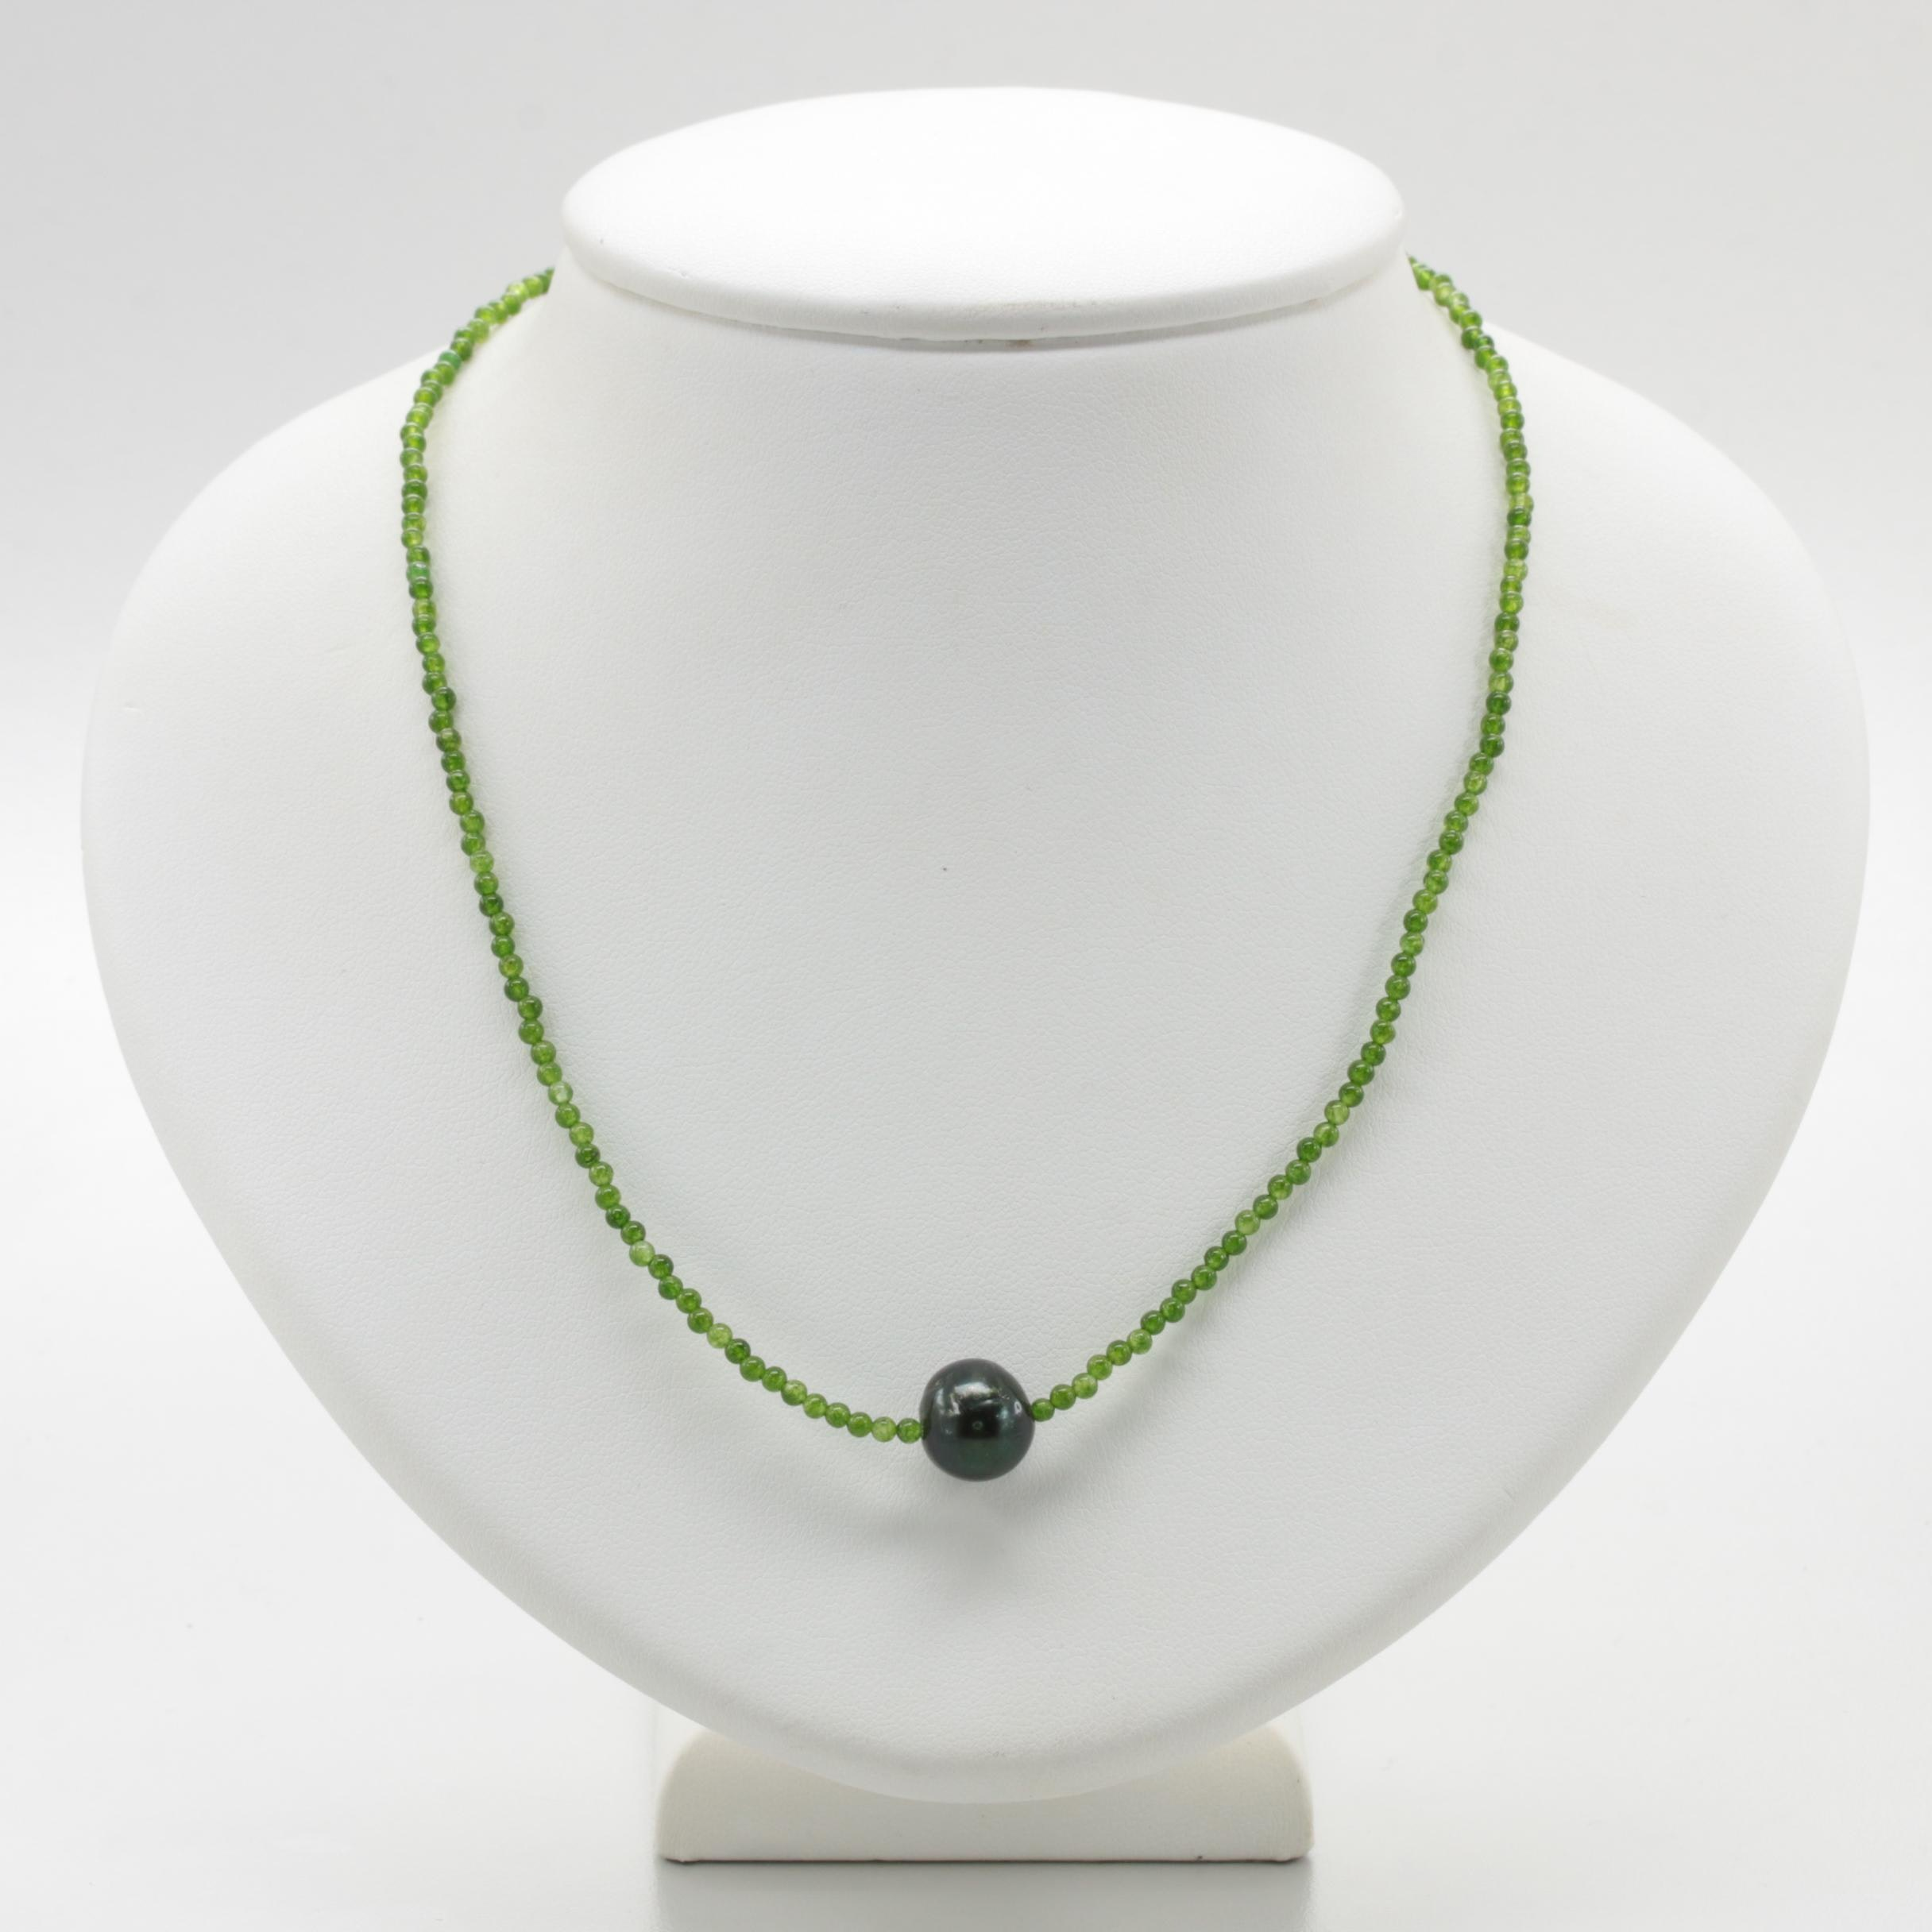 14K Yellow Gold Green Quartz and Cultured Pearl Beaded Necklace